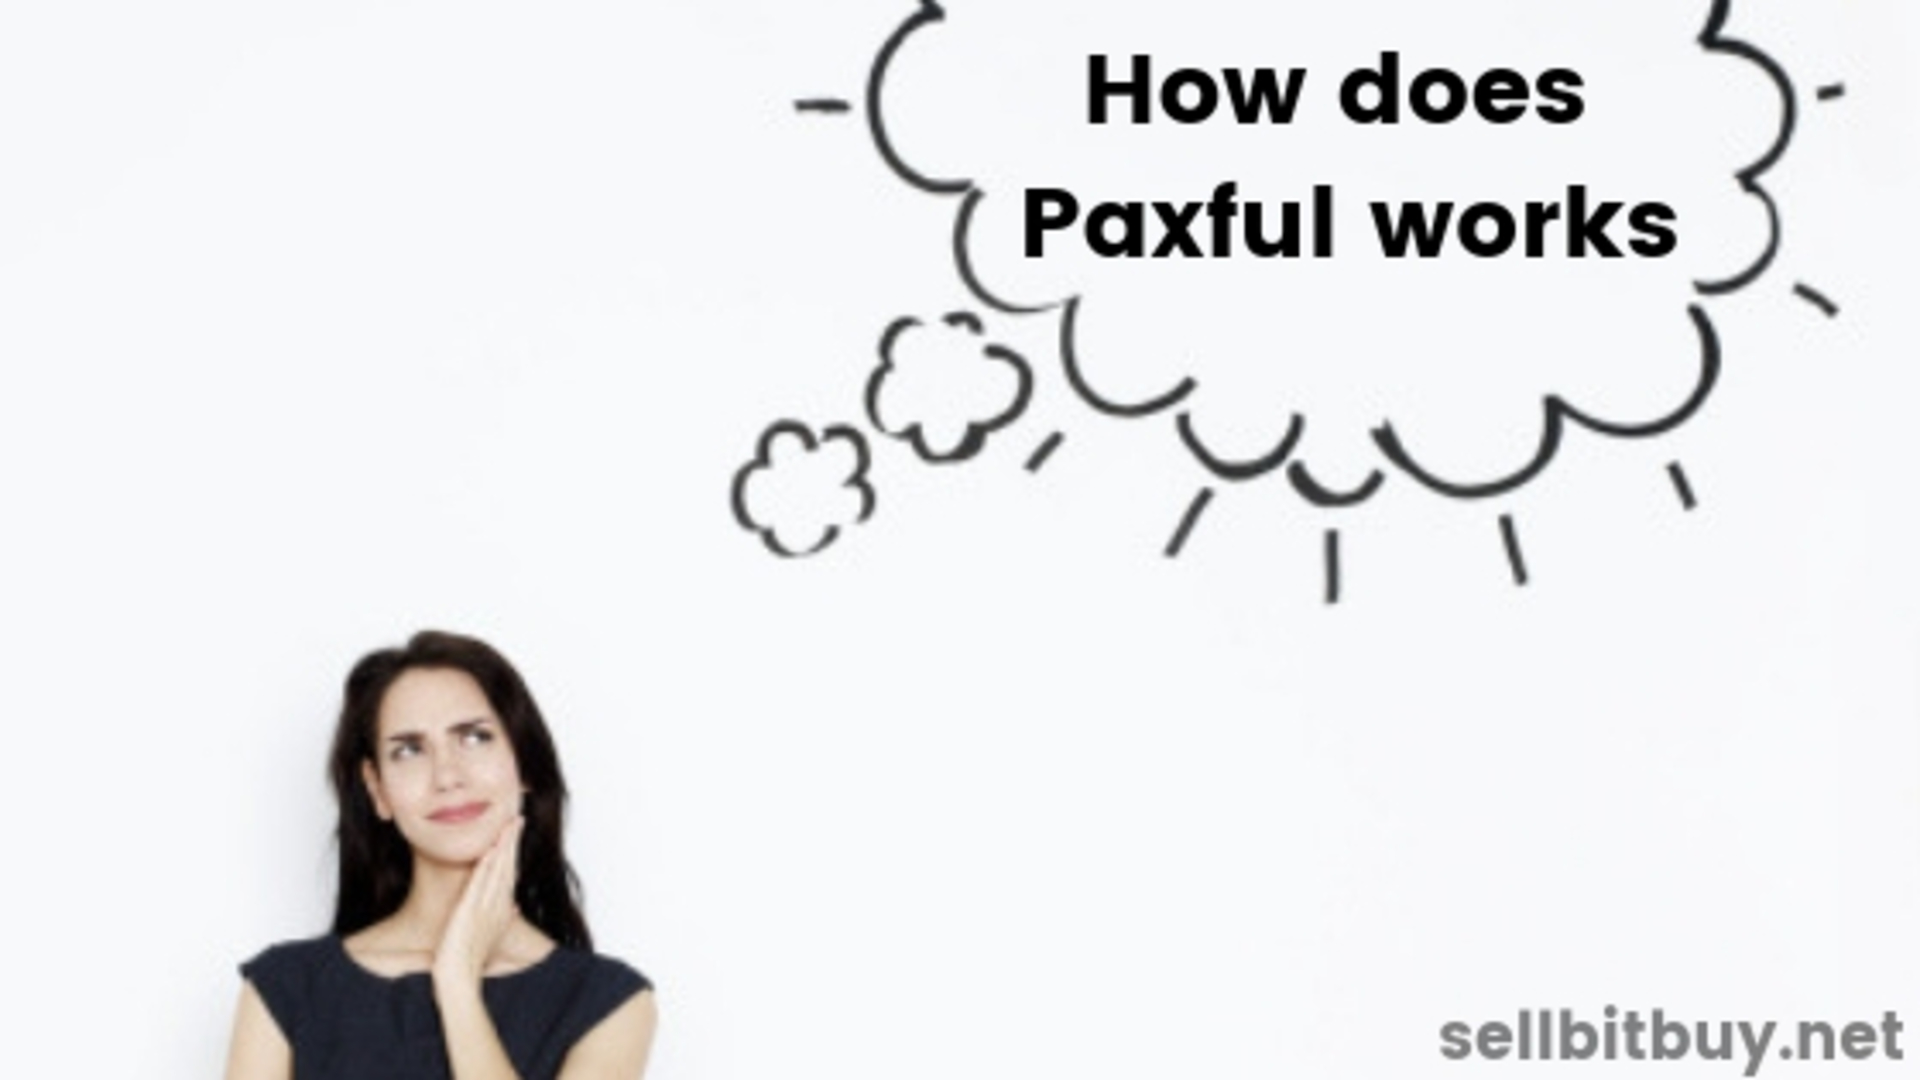 What work is going on Paxful exchange site? image